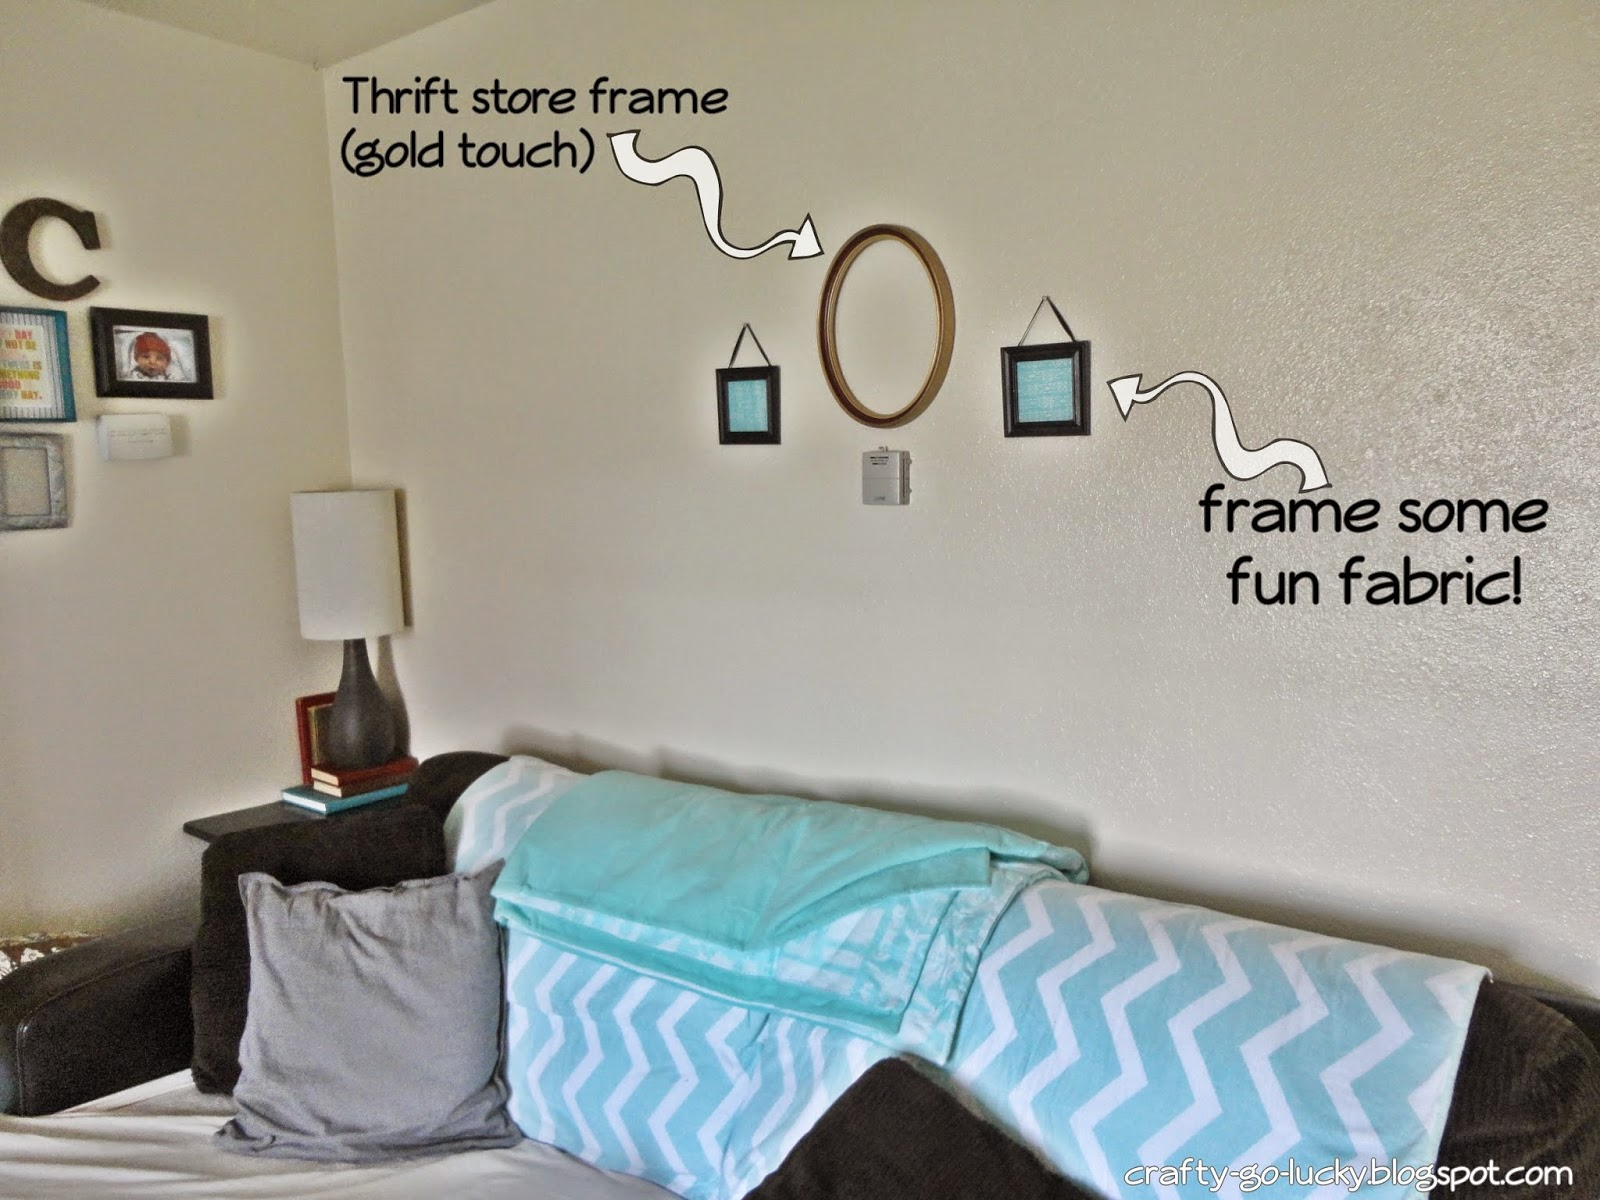 Thrifty Decor Tips